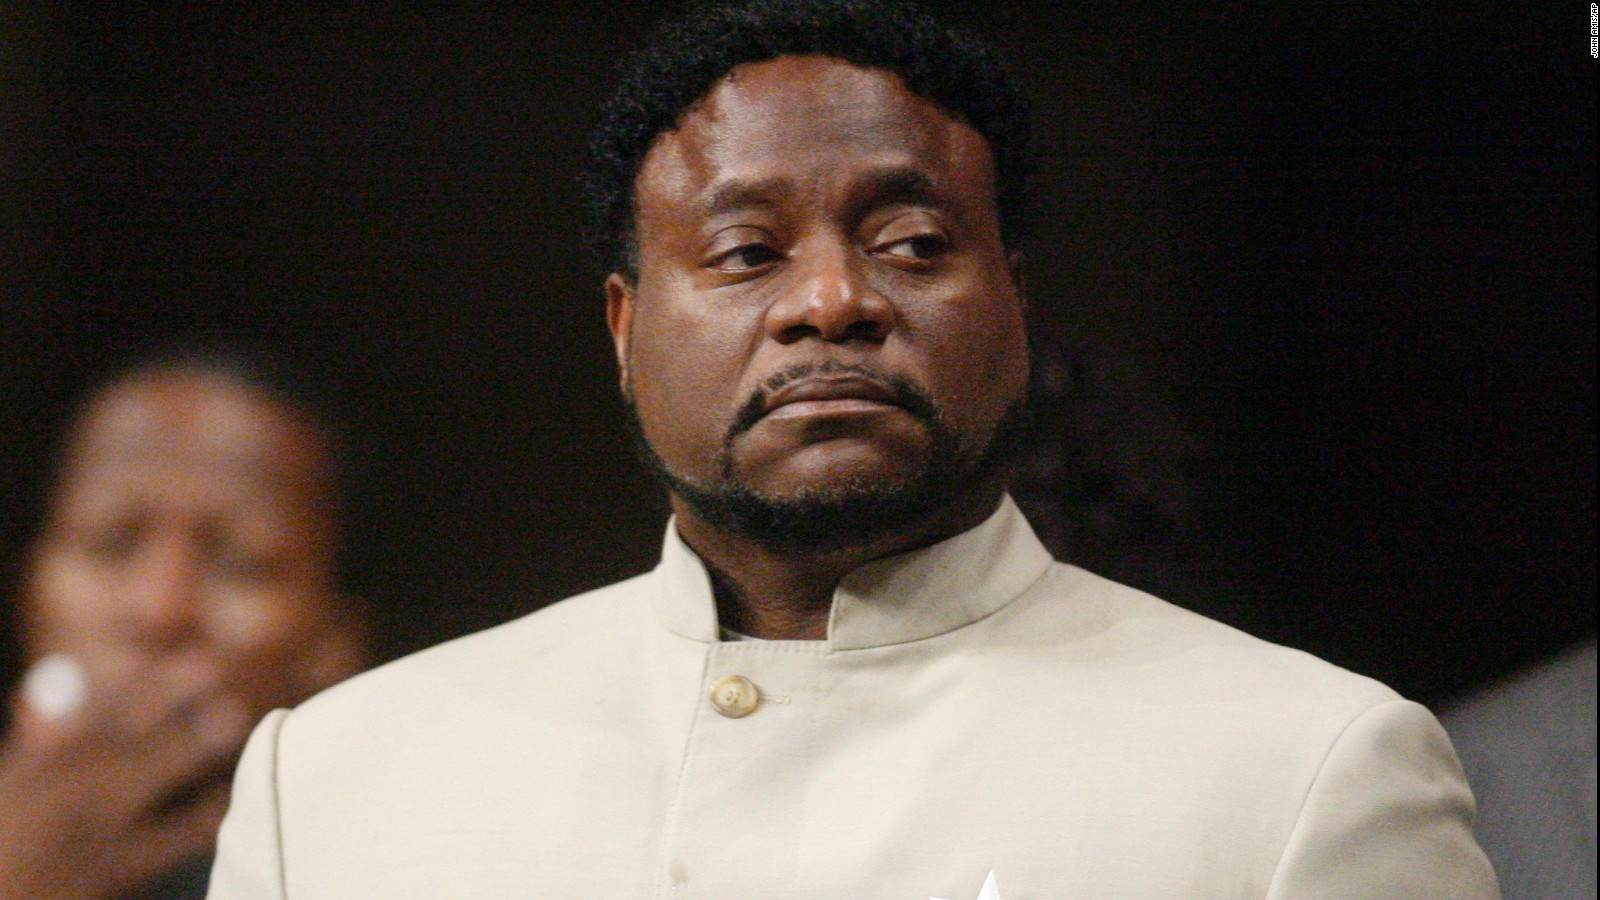 bishop eddie long controversial megachurch pastor dies at 63 cnn